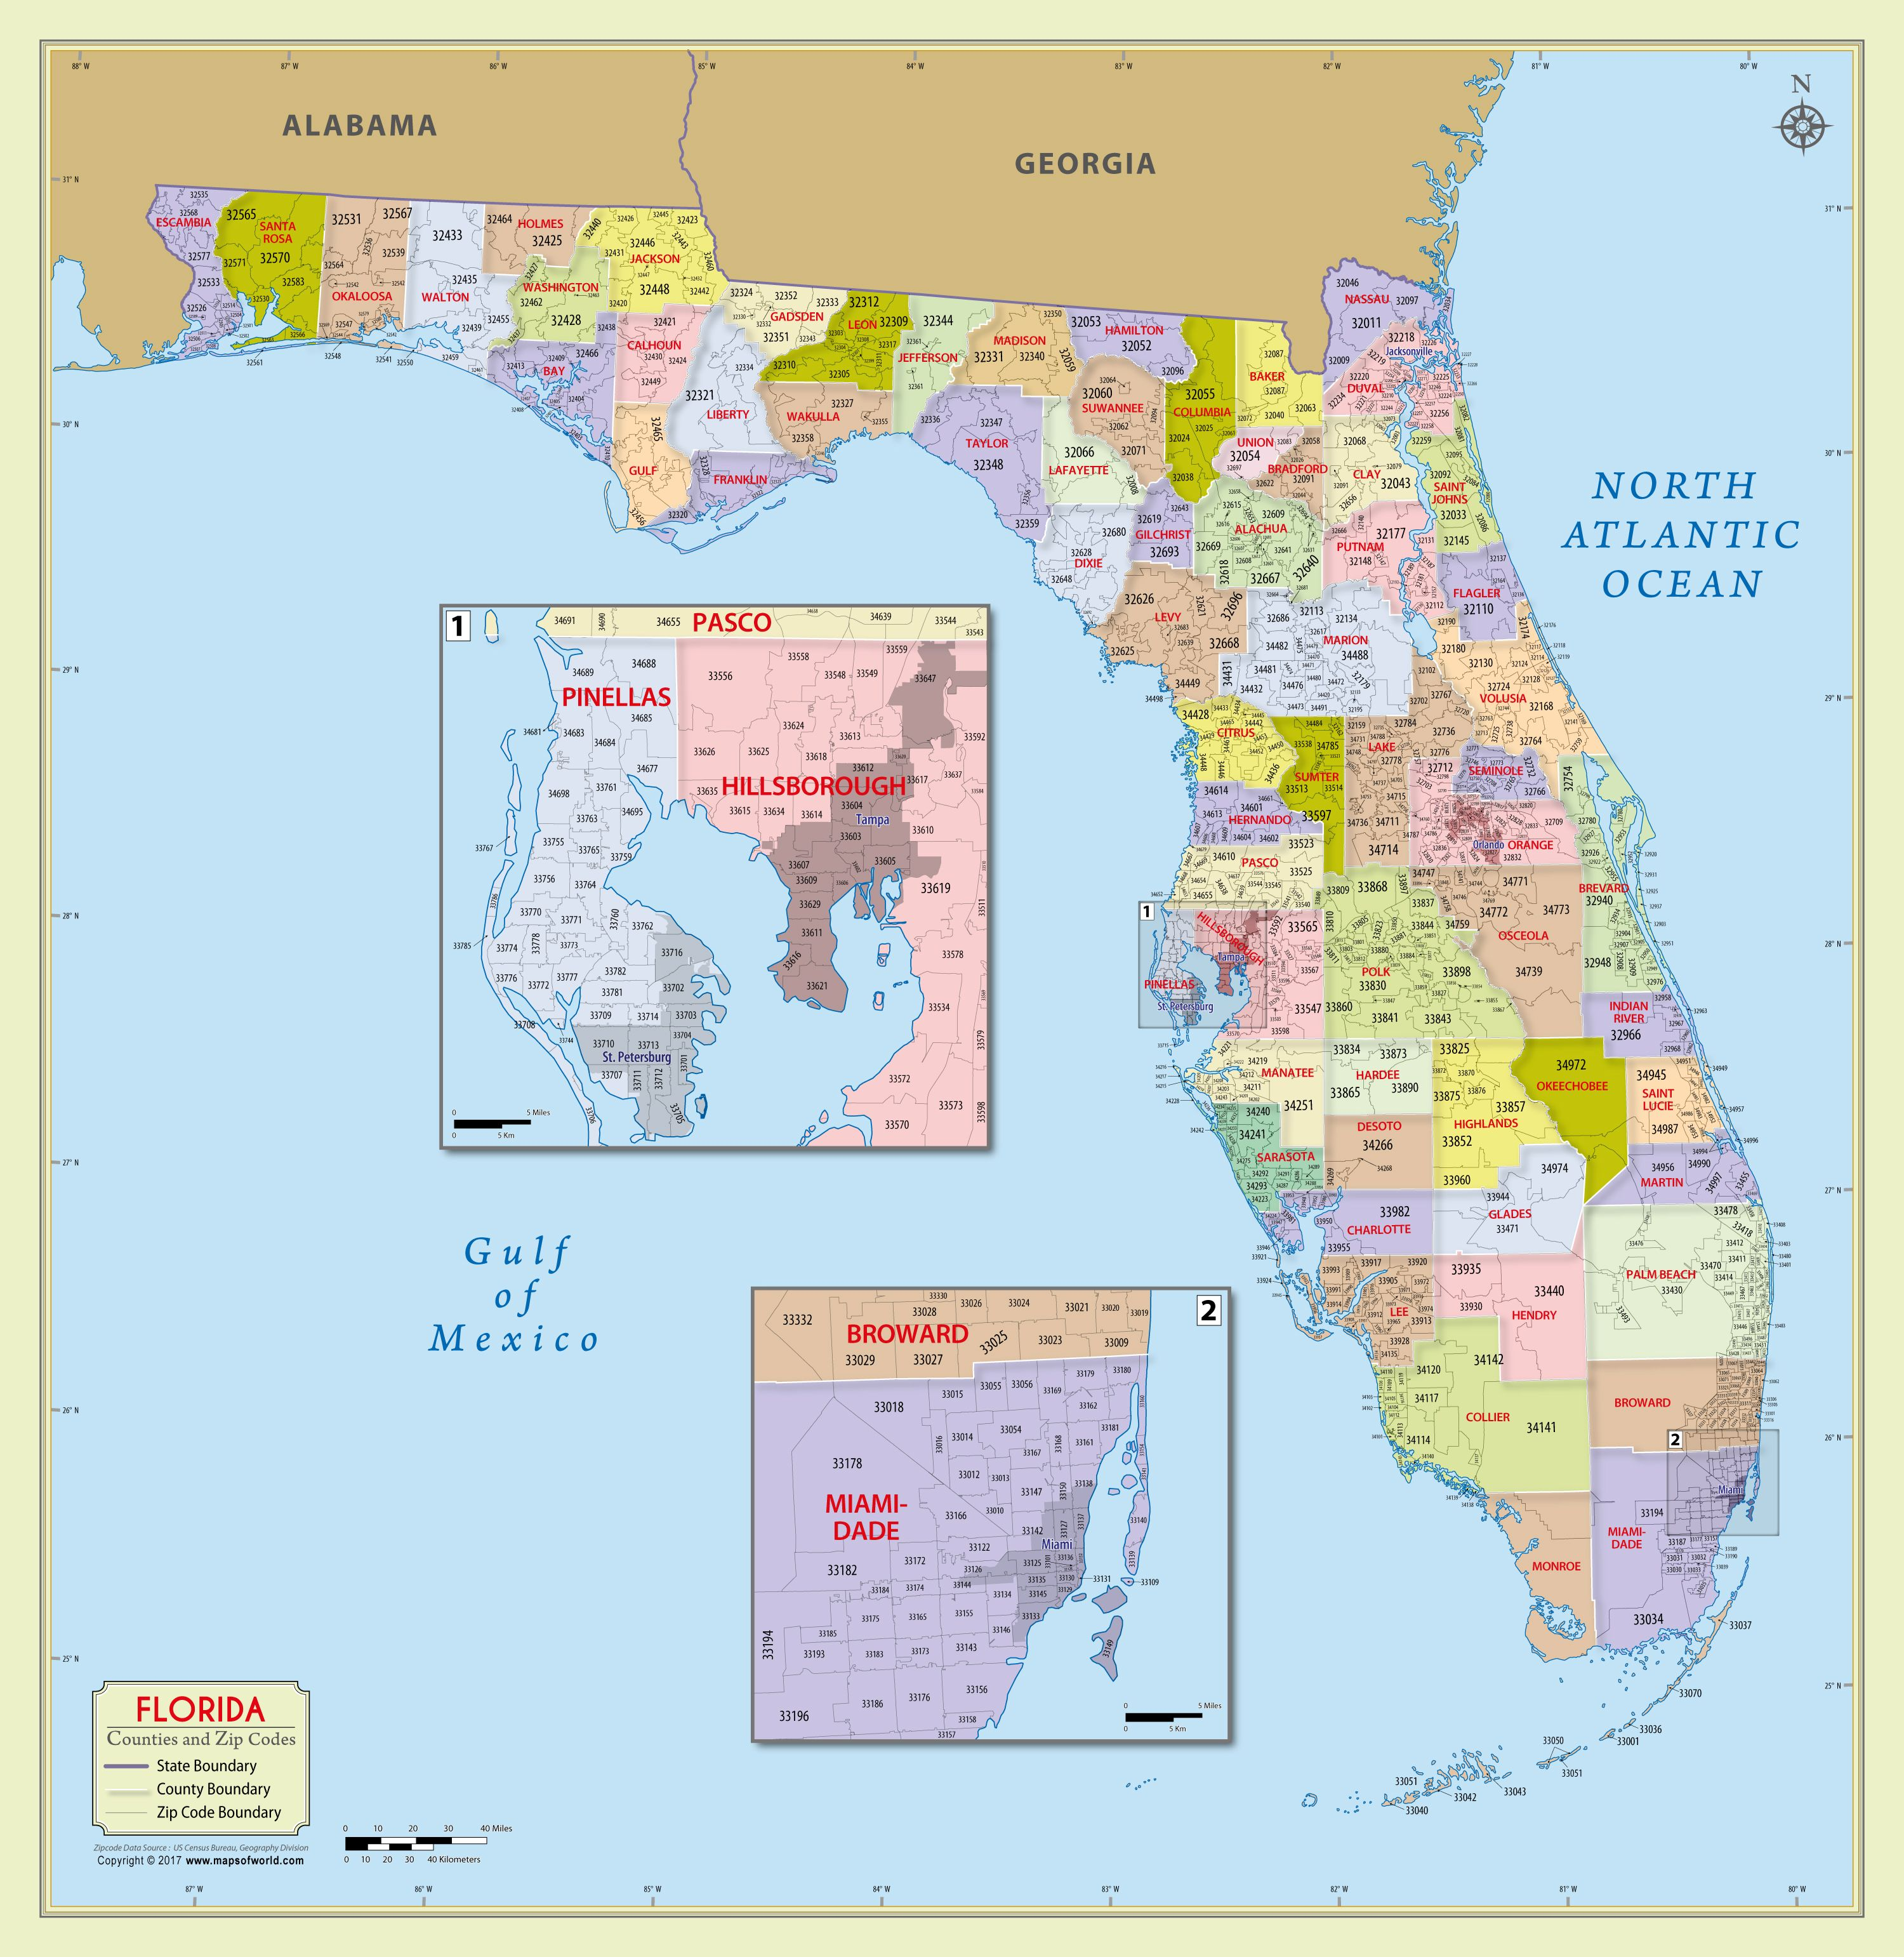 Florida Zip Code Map With Counties (48″ W x 49″ H) | #worldmapstore on zip codes by city map, usa accent map, usa subdivision map, usa district map, usa time zone map, usa language map, usa school map, usa street map, usa mountains map, usa phone code, usa activities, usa telephone map, usa state map, usa on a map, usa mobile map, usa map map, ip address locator map, usa occupation map, usa education map, usa county map,